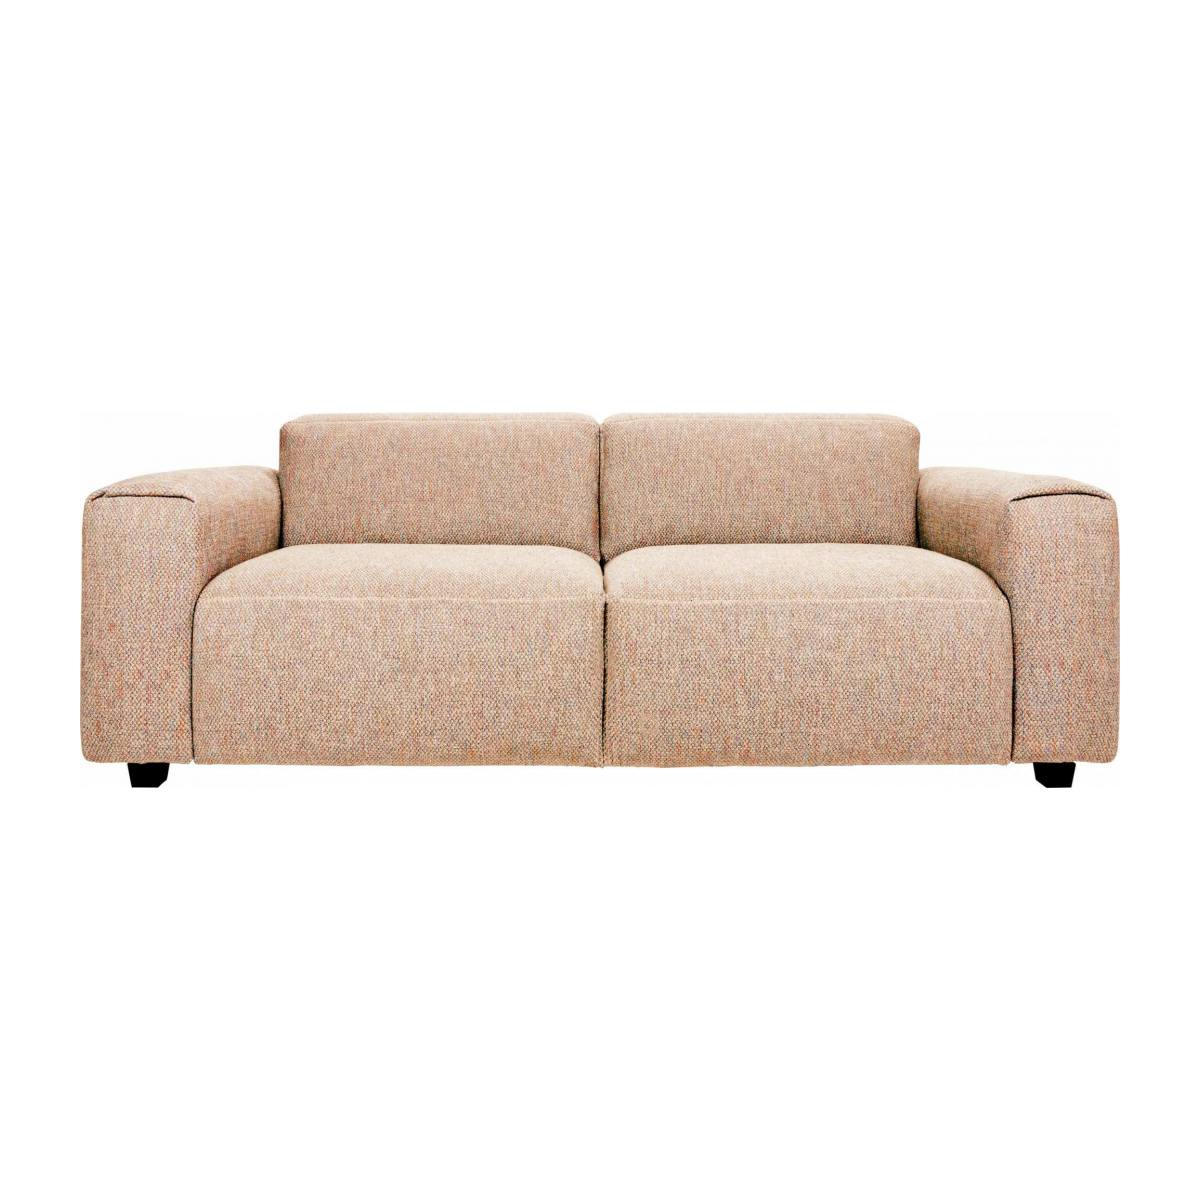 2-seater sofa in Bellagio fabric, passion orange n°1